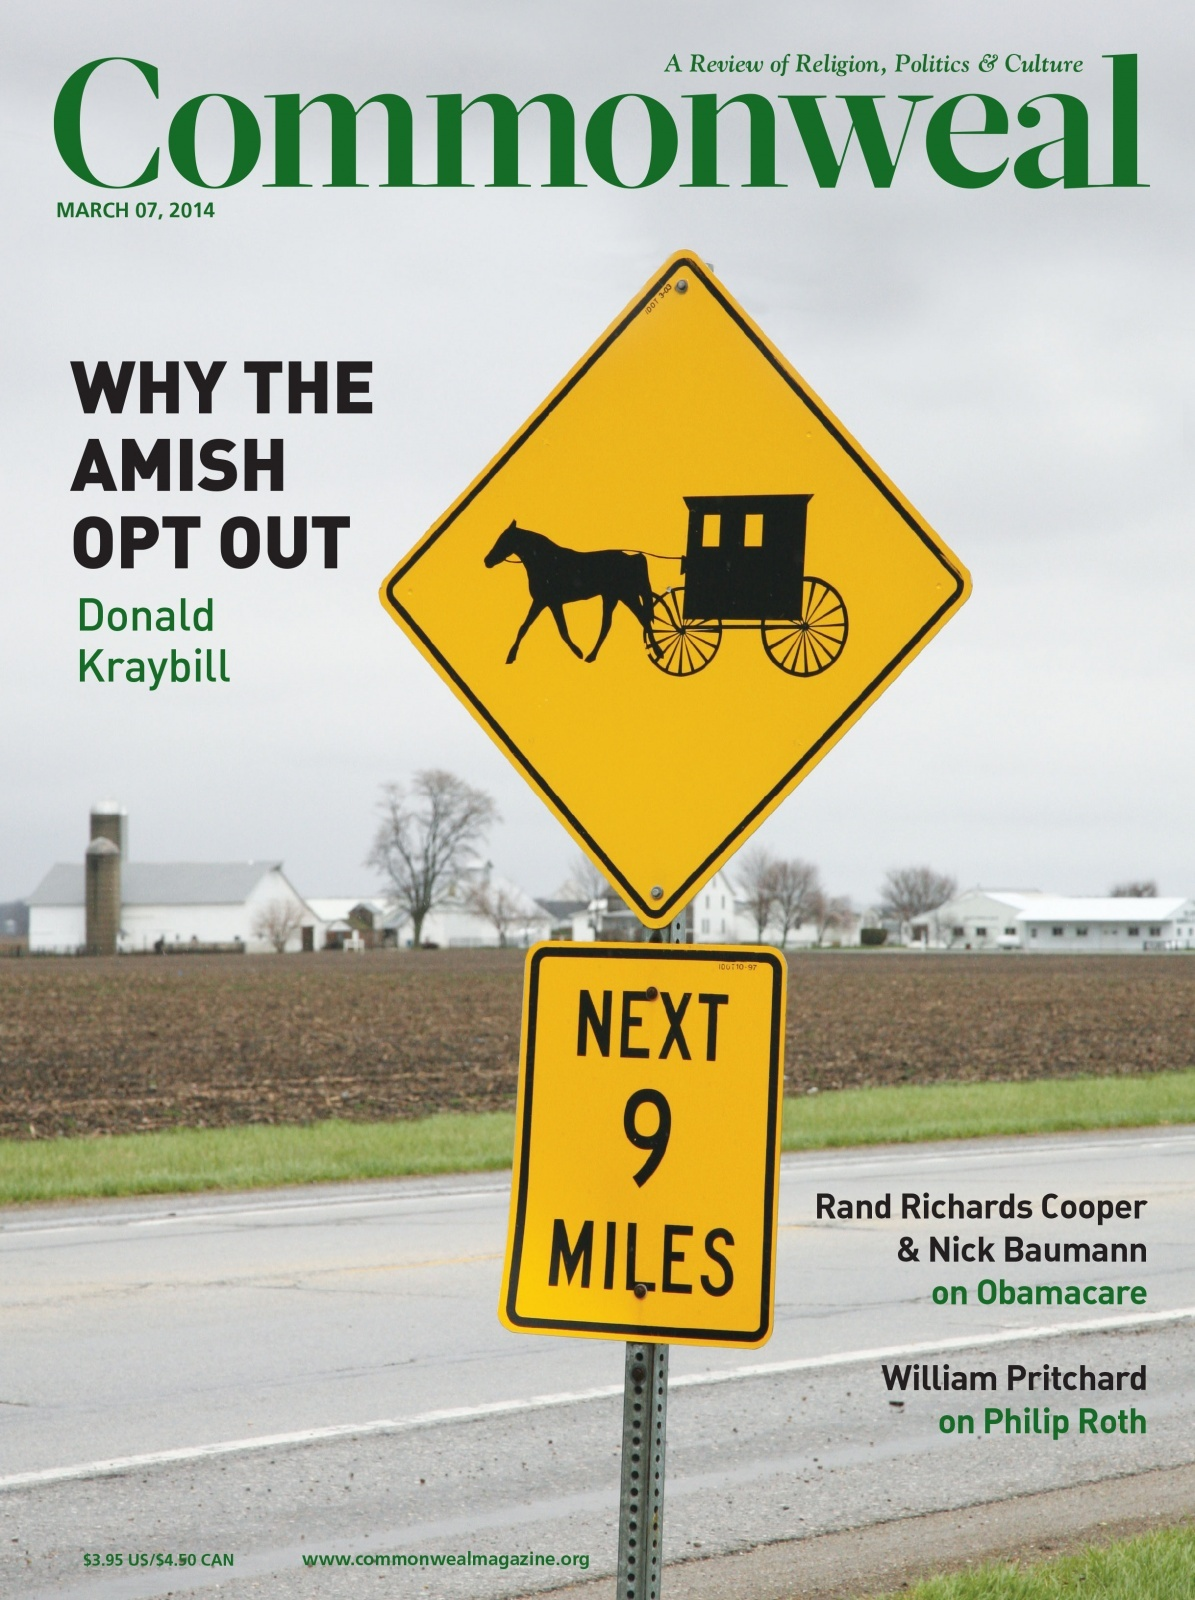 Commonweal Magazine - Opting Out: How the Amish Haved Survived in America by Donald Kraybill